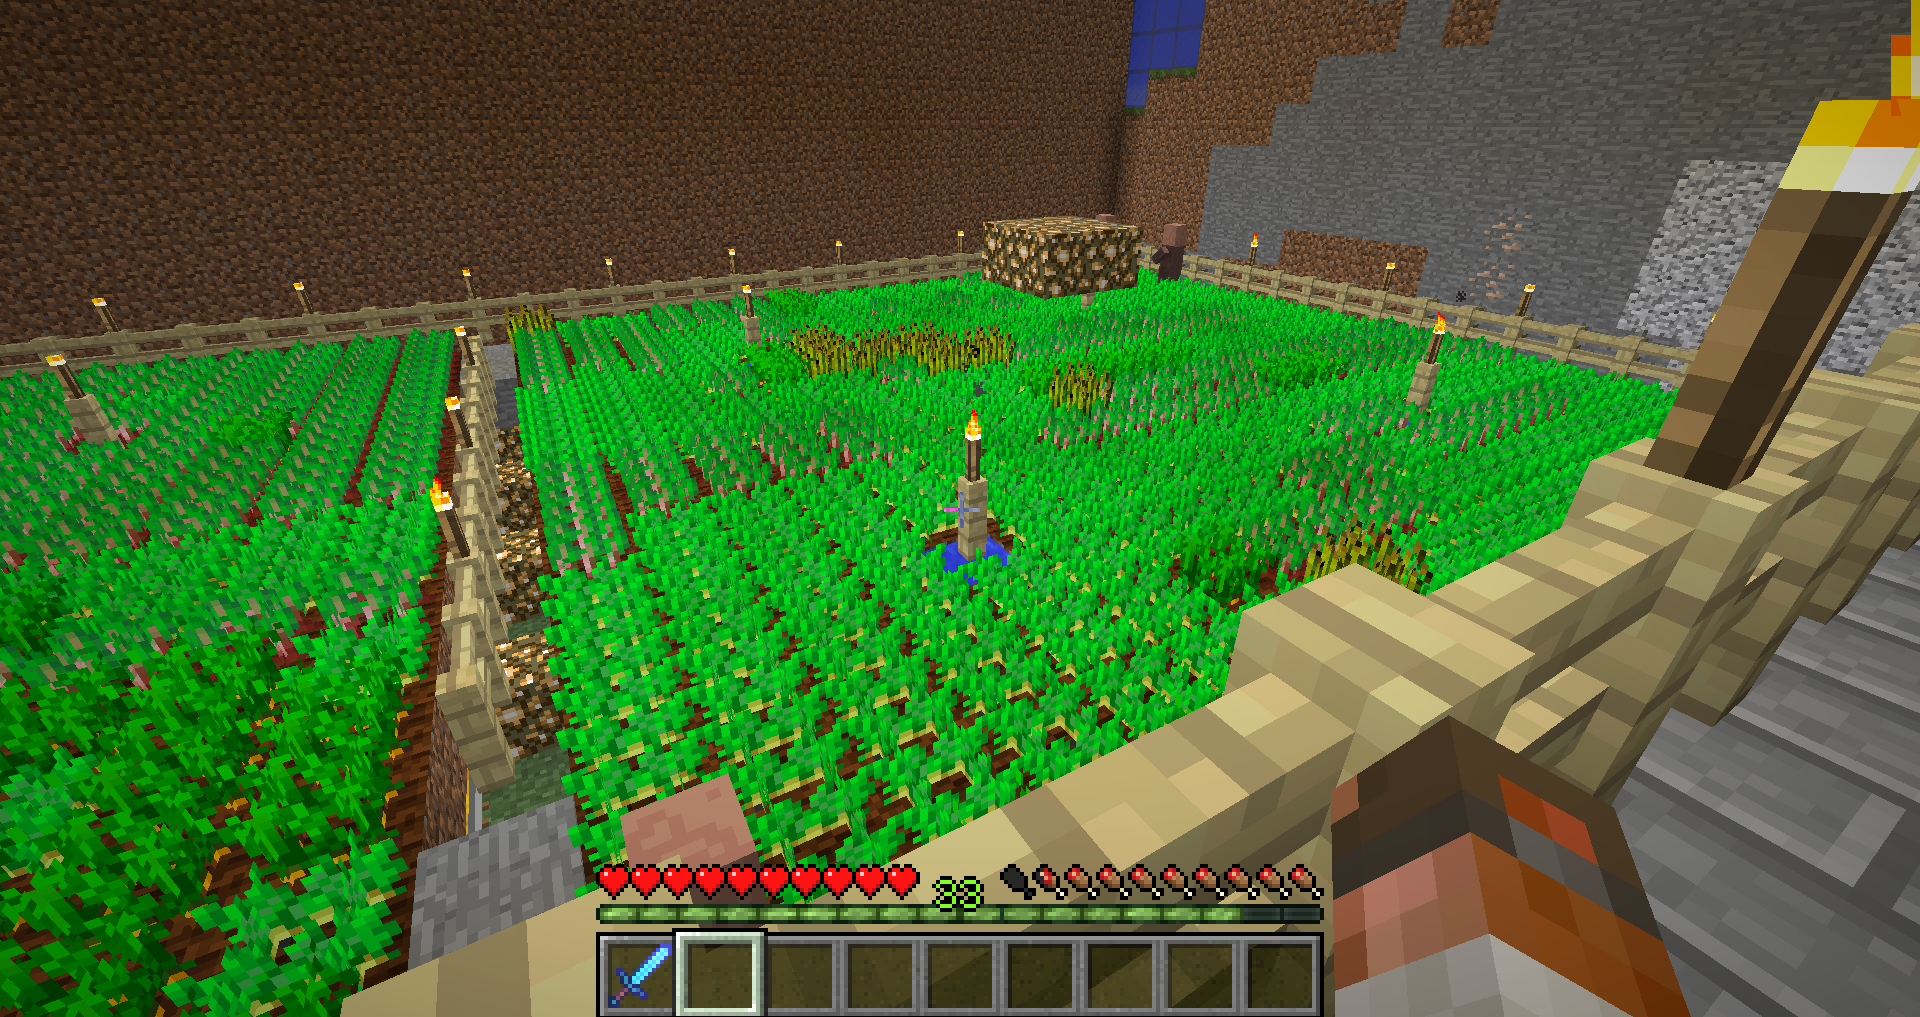 Villagers are not farming 1 12 - Survival Mode - Minecraft: Java